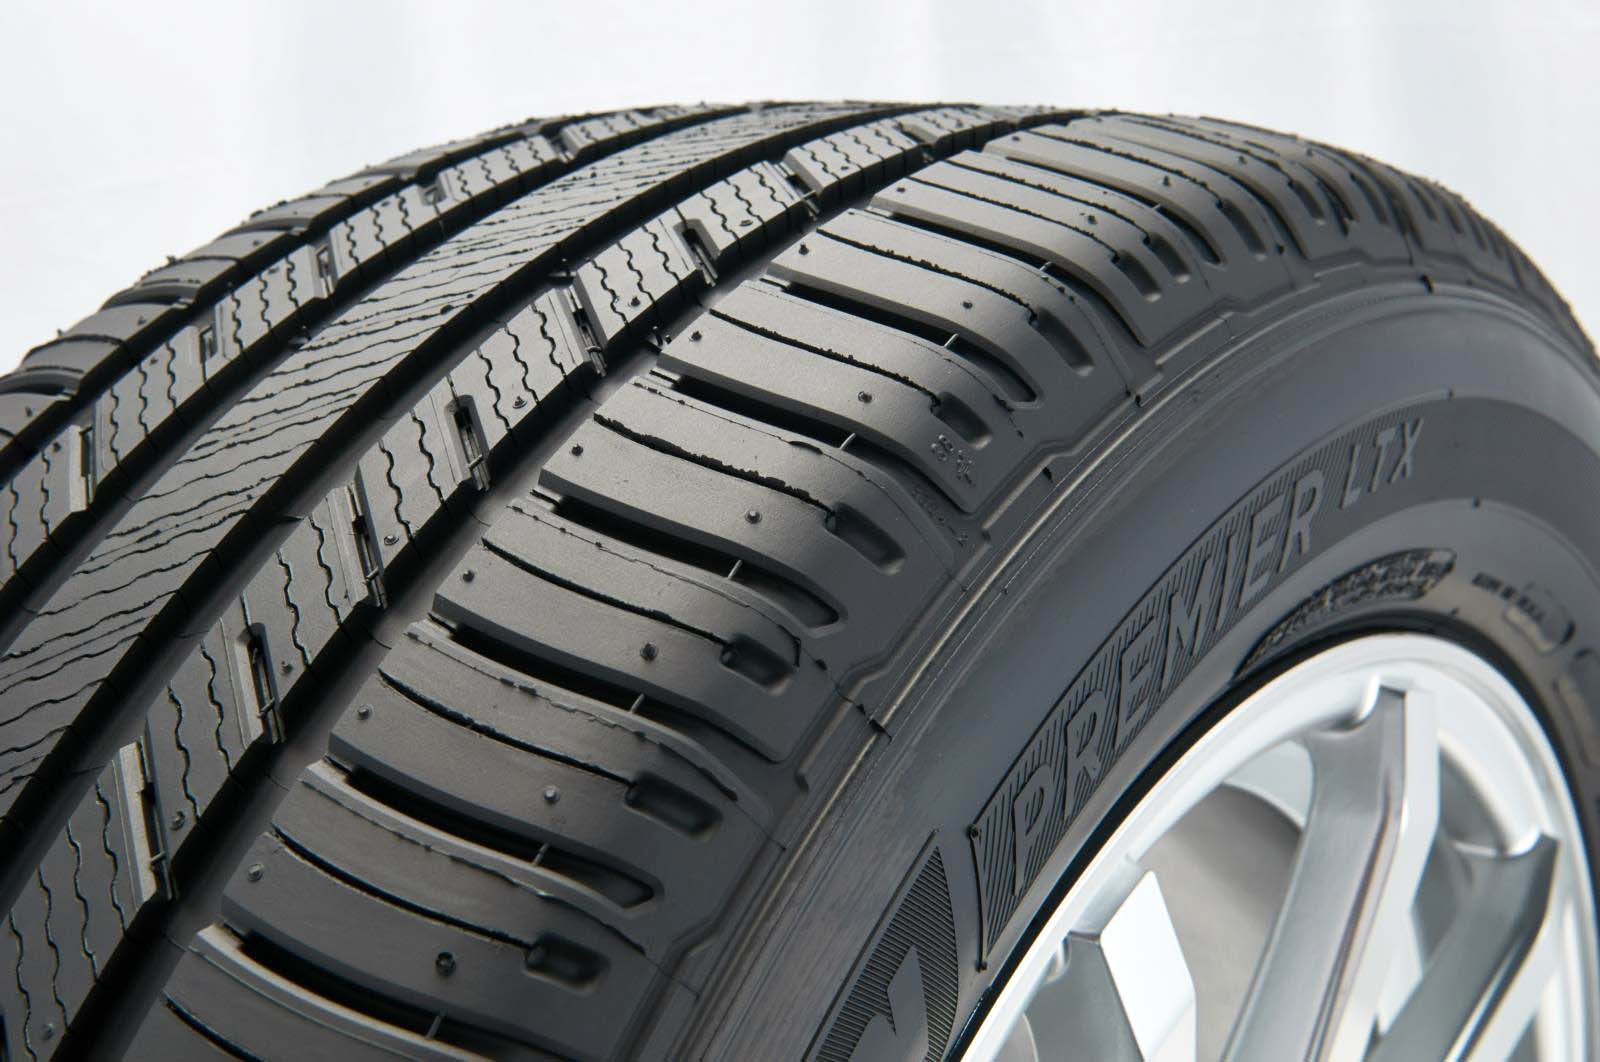 Tire treads consist of numerous design components, including sipes, grooves, blocks, nubs, pumps and more. Though the presence and name of tread components vary widely between tire manufacturers and types of tires, the common ones are visible above.</p> <p>Sipes are the thin cuts, most prominent on the middle part of this tire's tread. These thin slices are typically designed to force water away from the surface of the tire to prevent hydroplaning, or to give a thin film of water a place to go when tires roll over it. It's all about enhancing the amount of rubber touching the road. Sipes also play a role in determining the flexibility of a tire, which affects its handling and noise levels, too.